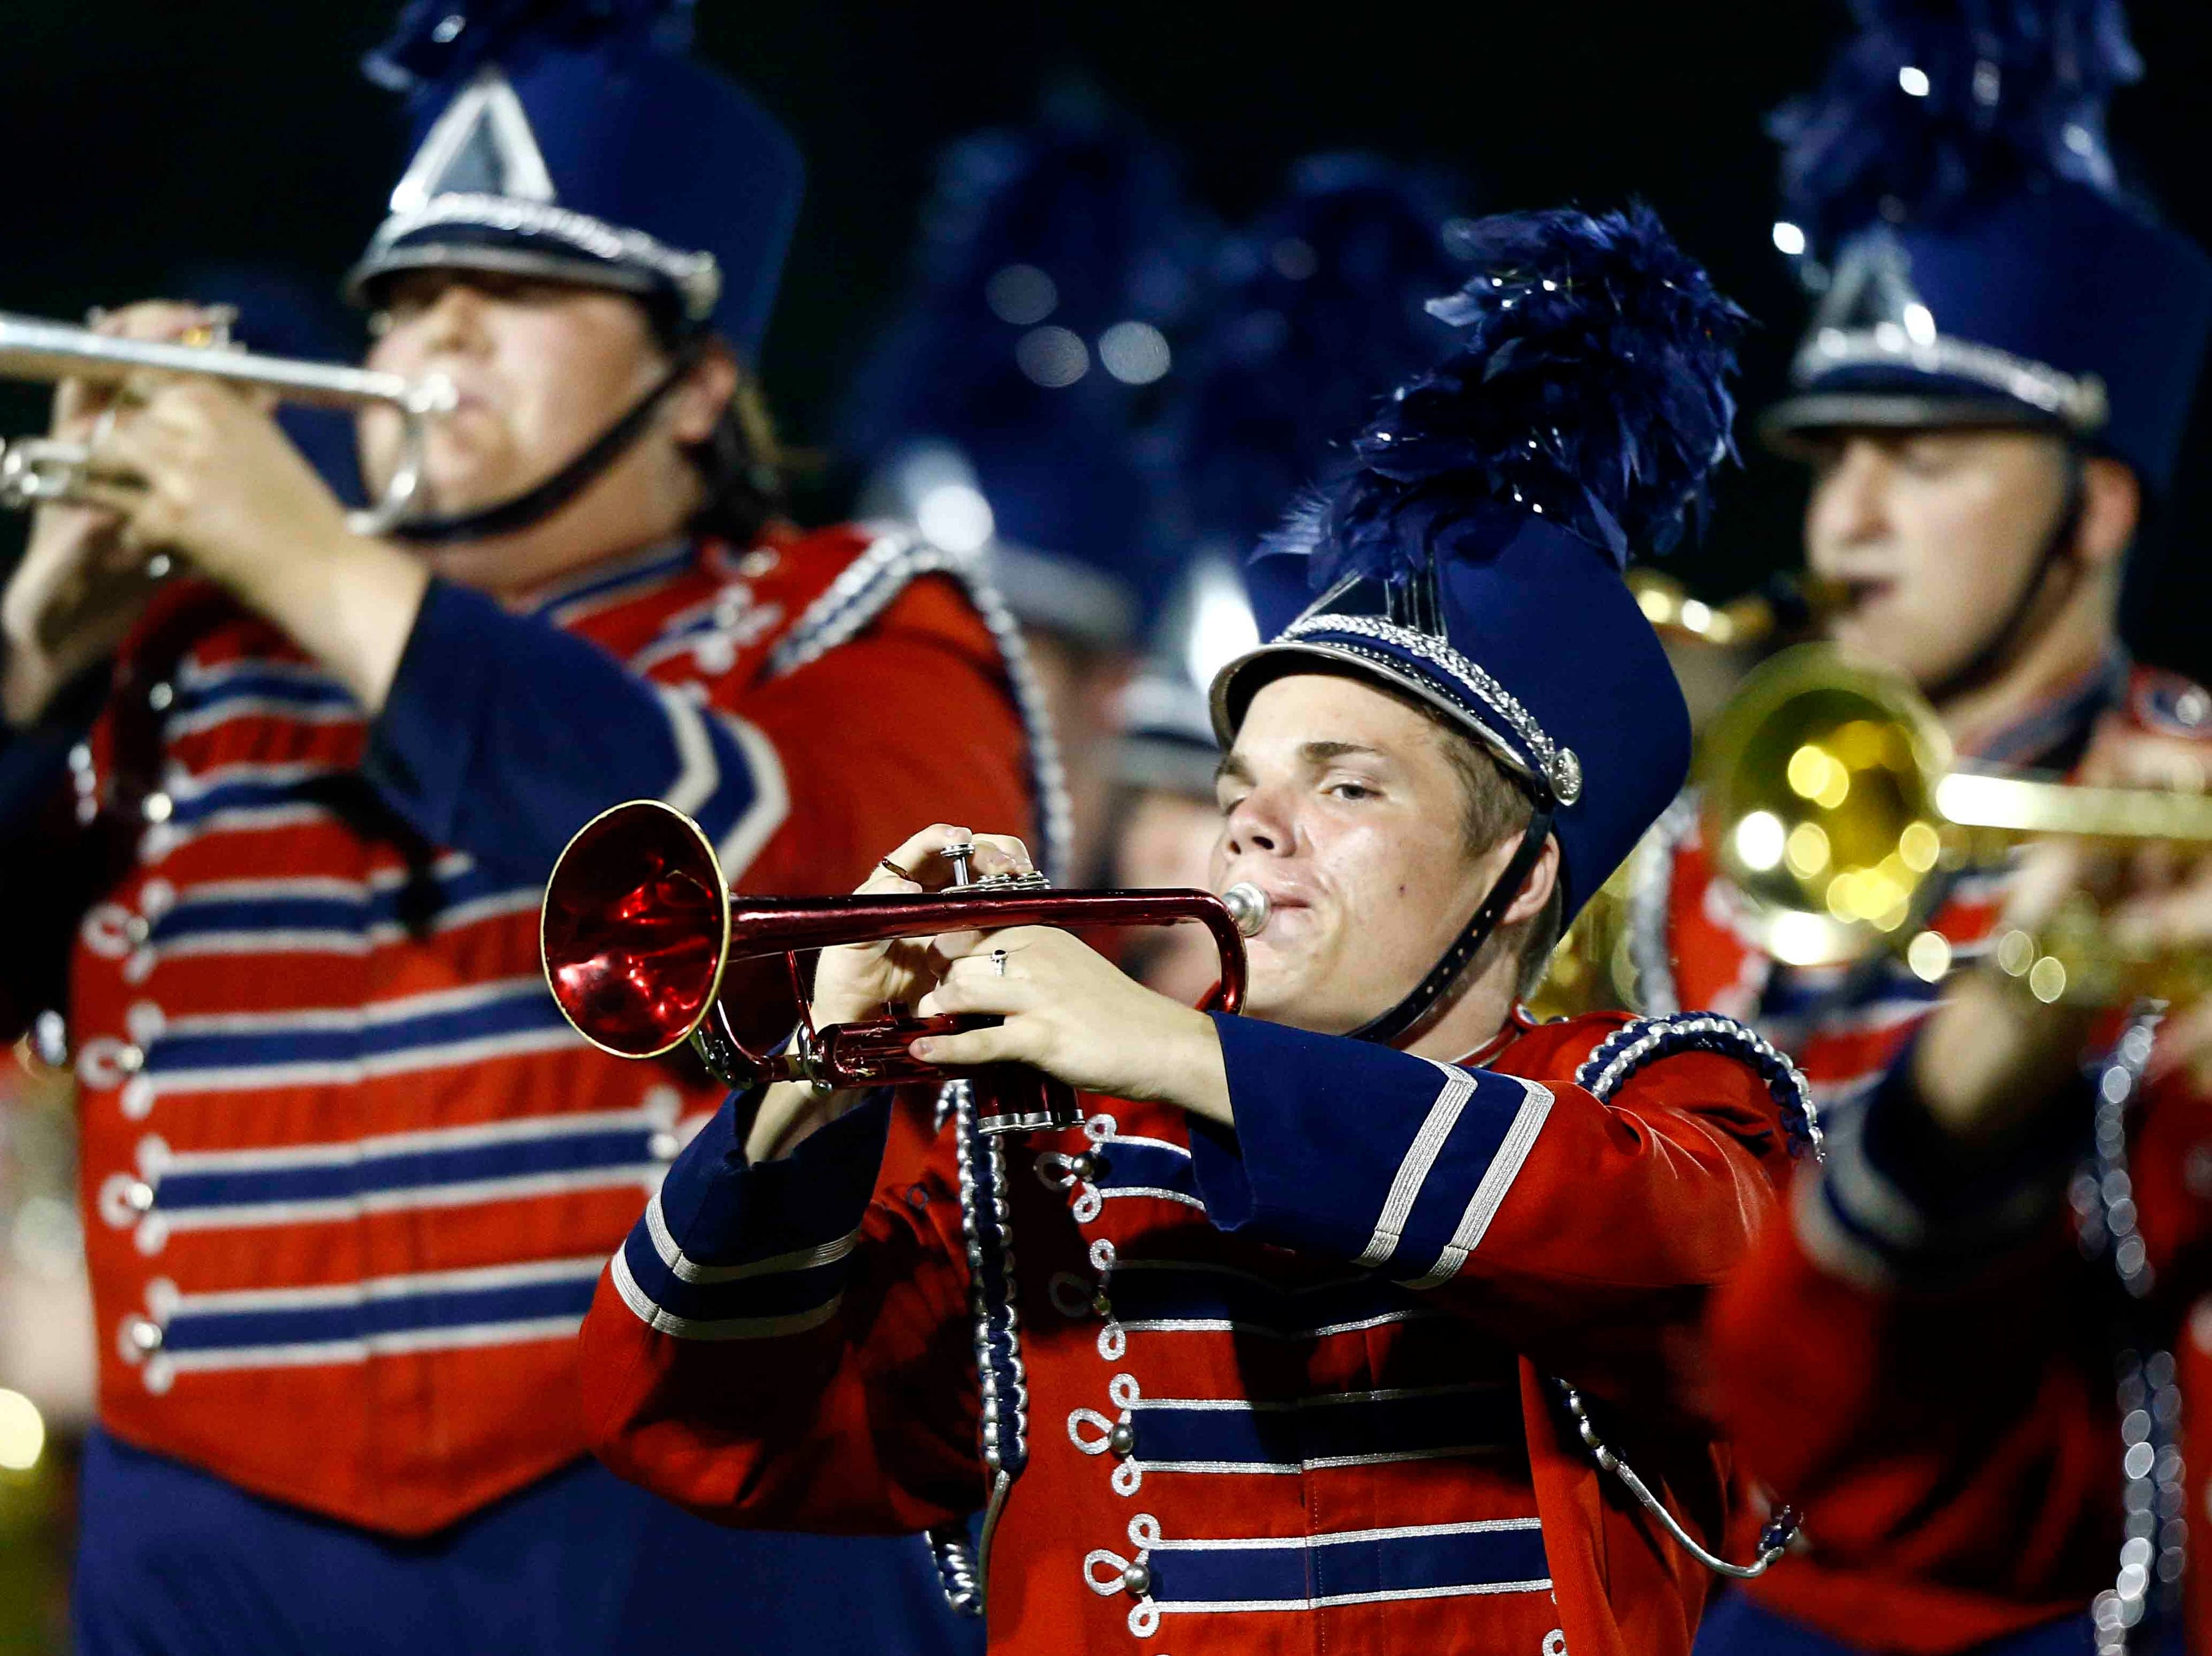 Members of the Creek Wood band perform  the band  during halftime of their game against Montgomery Central Friday, Sept. 14, 2018, in Charlotte, Tenn.